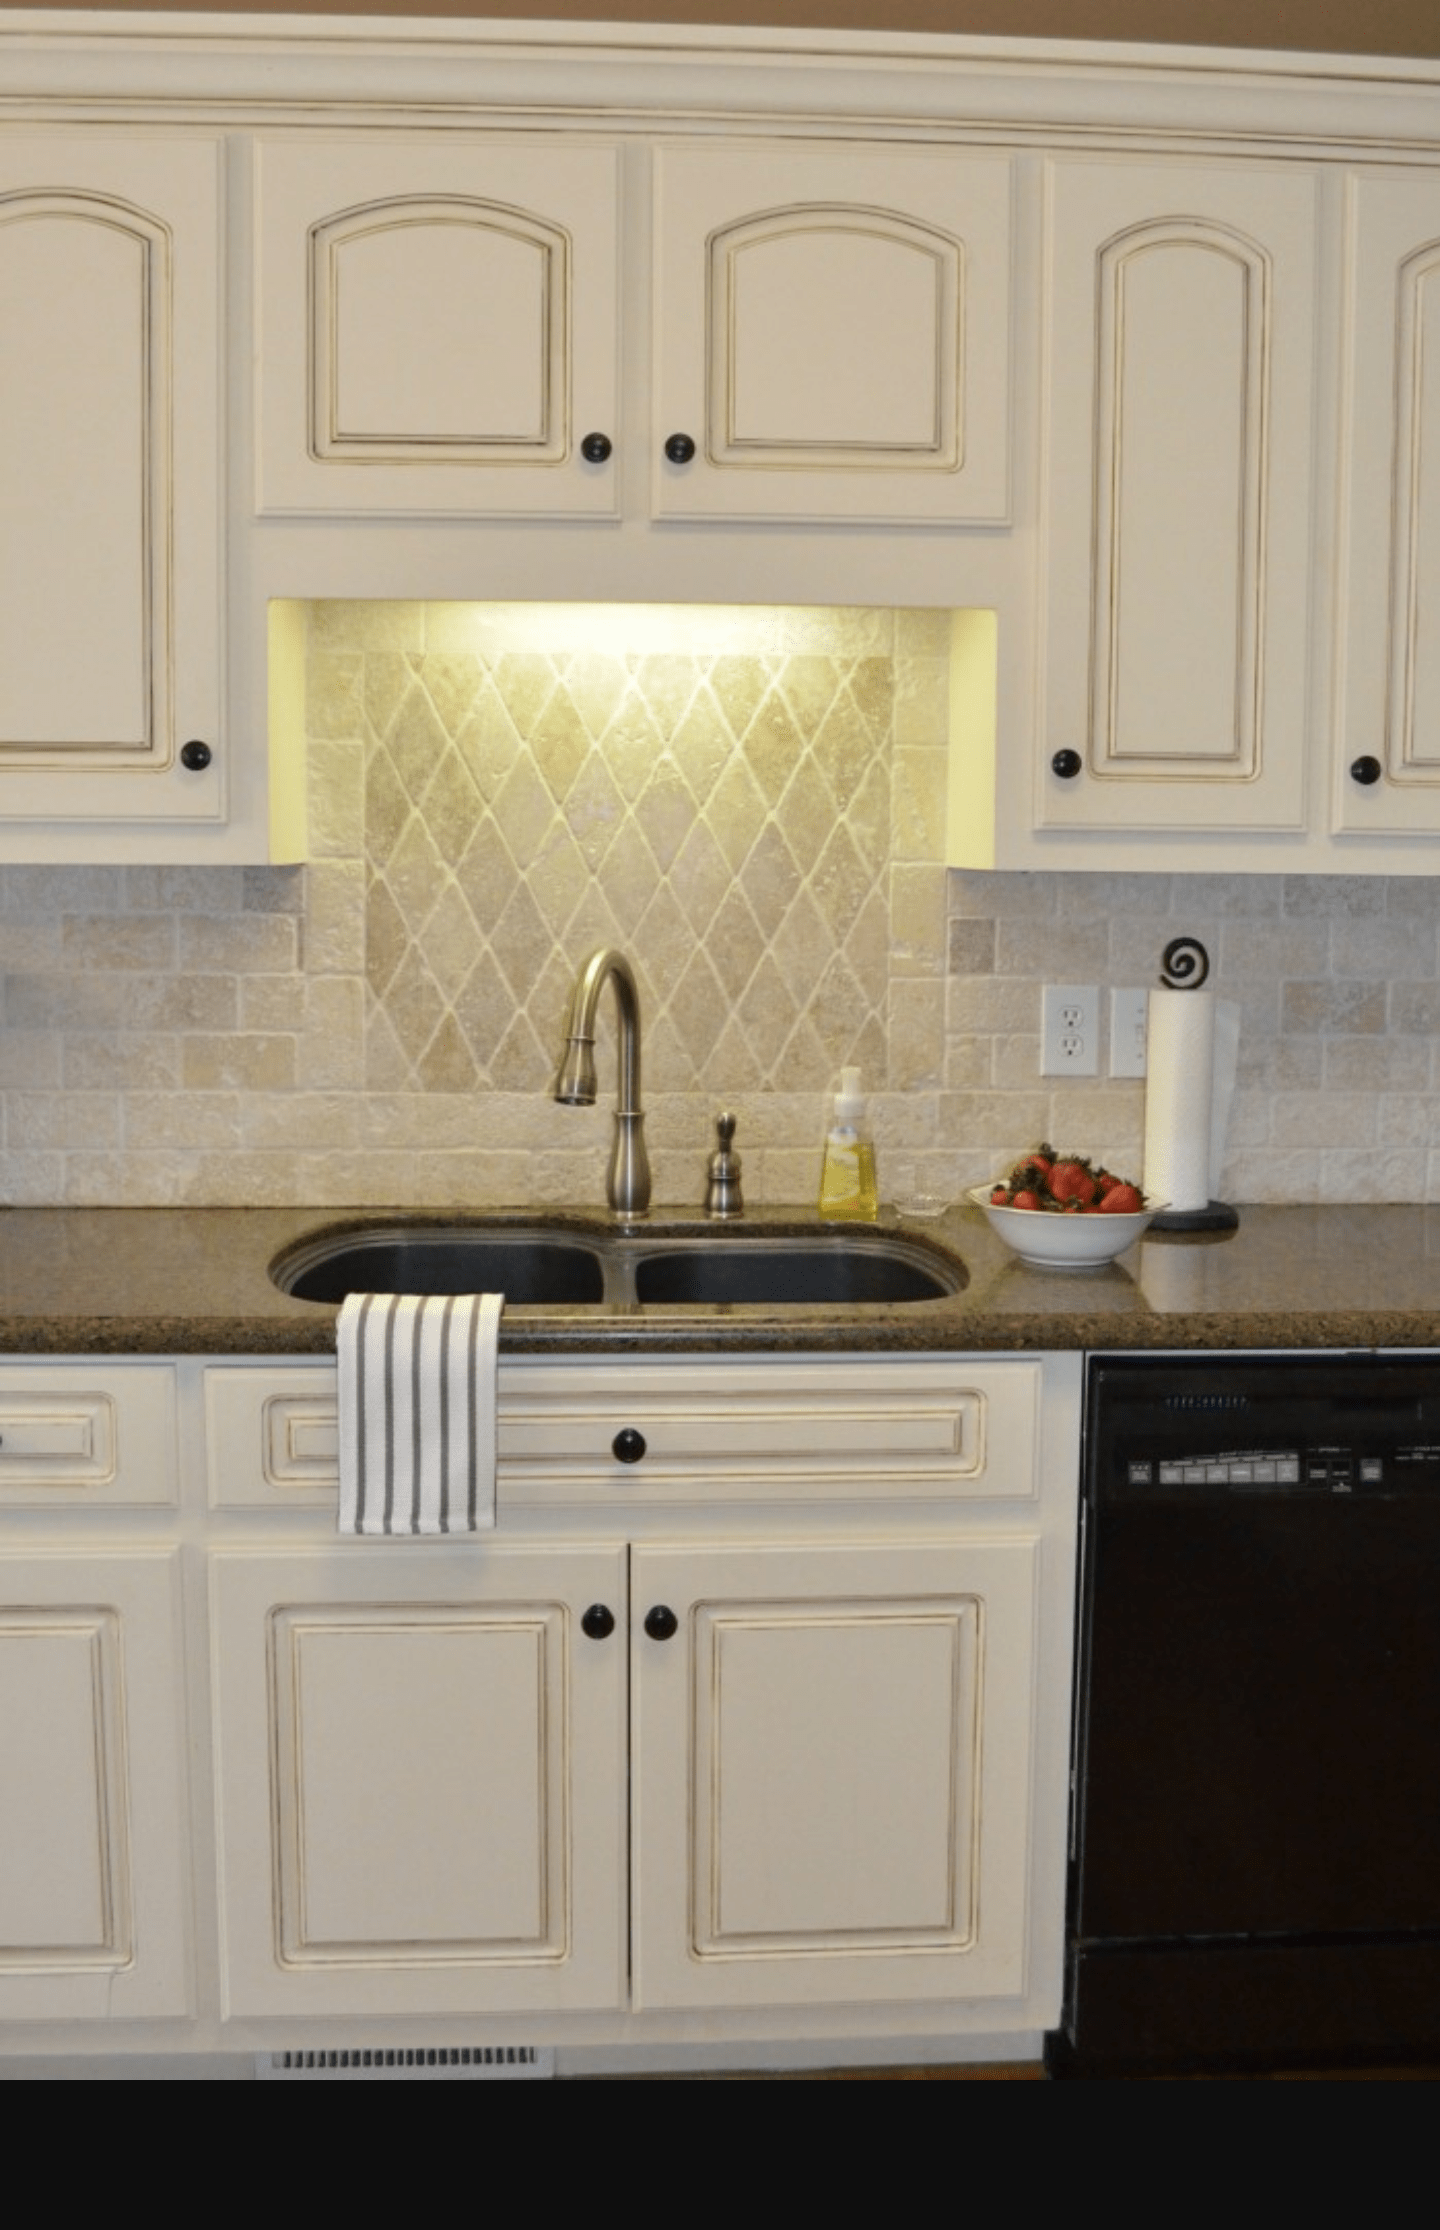 p kitchen sinks denver Kitchen cabinet painting and cabinet refinishing in Denver